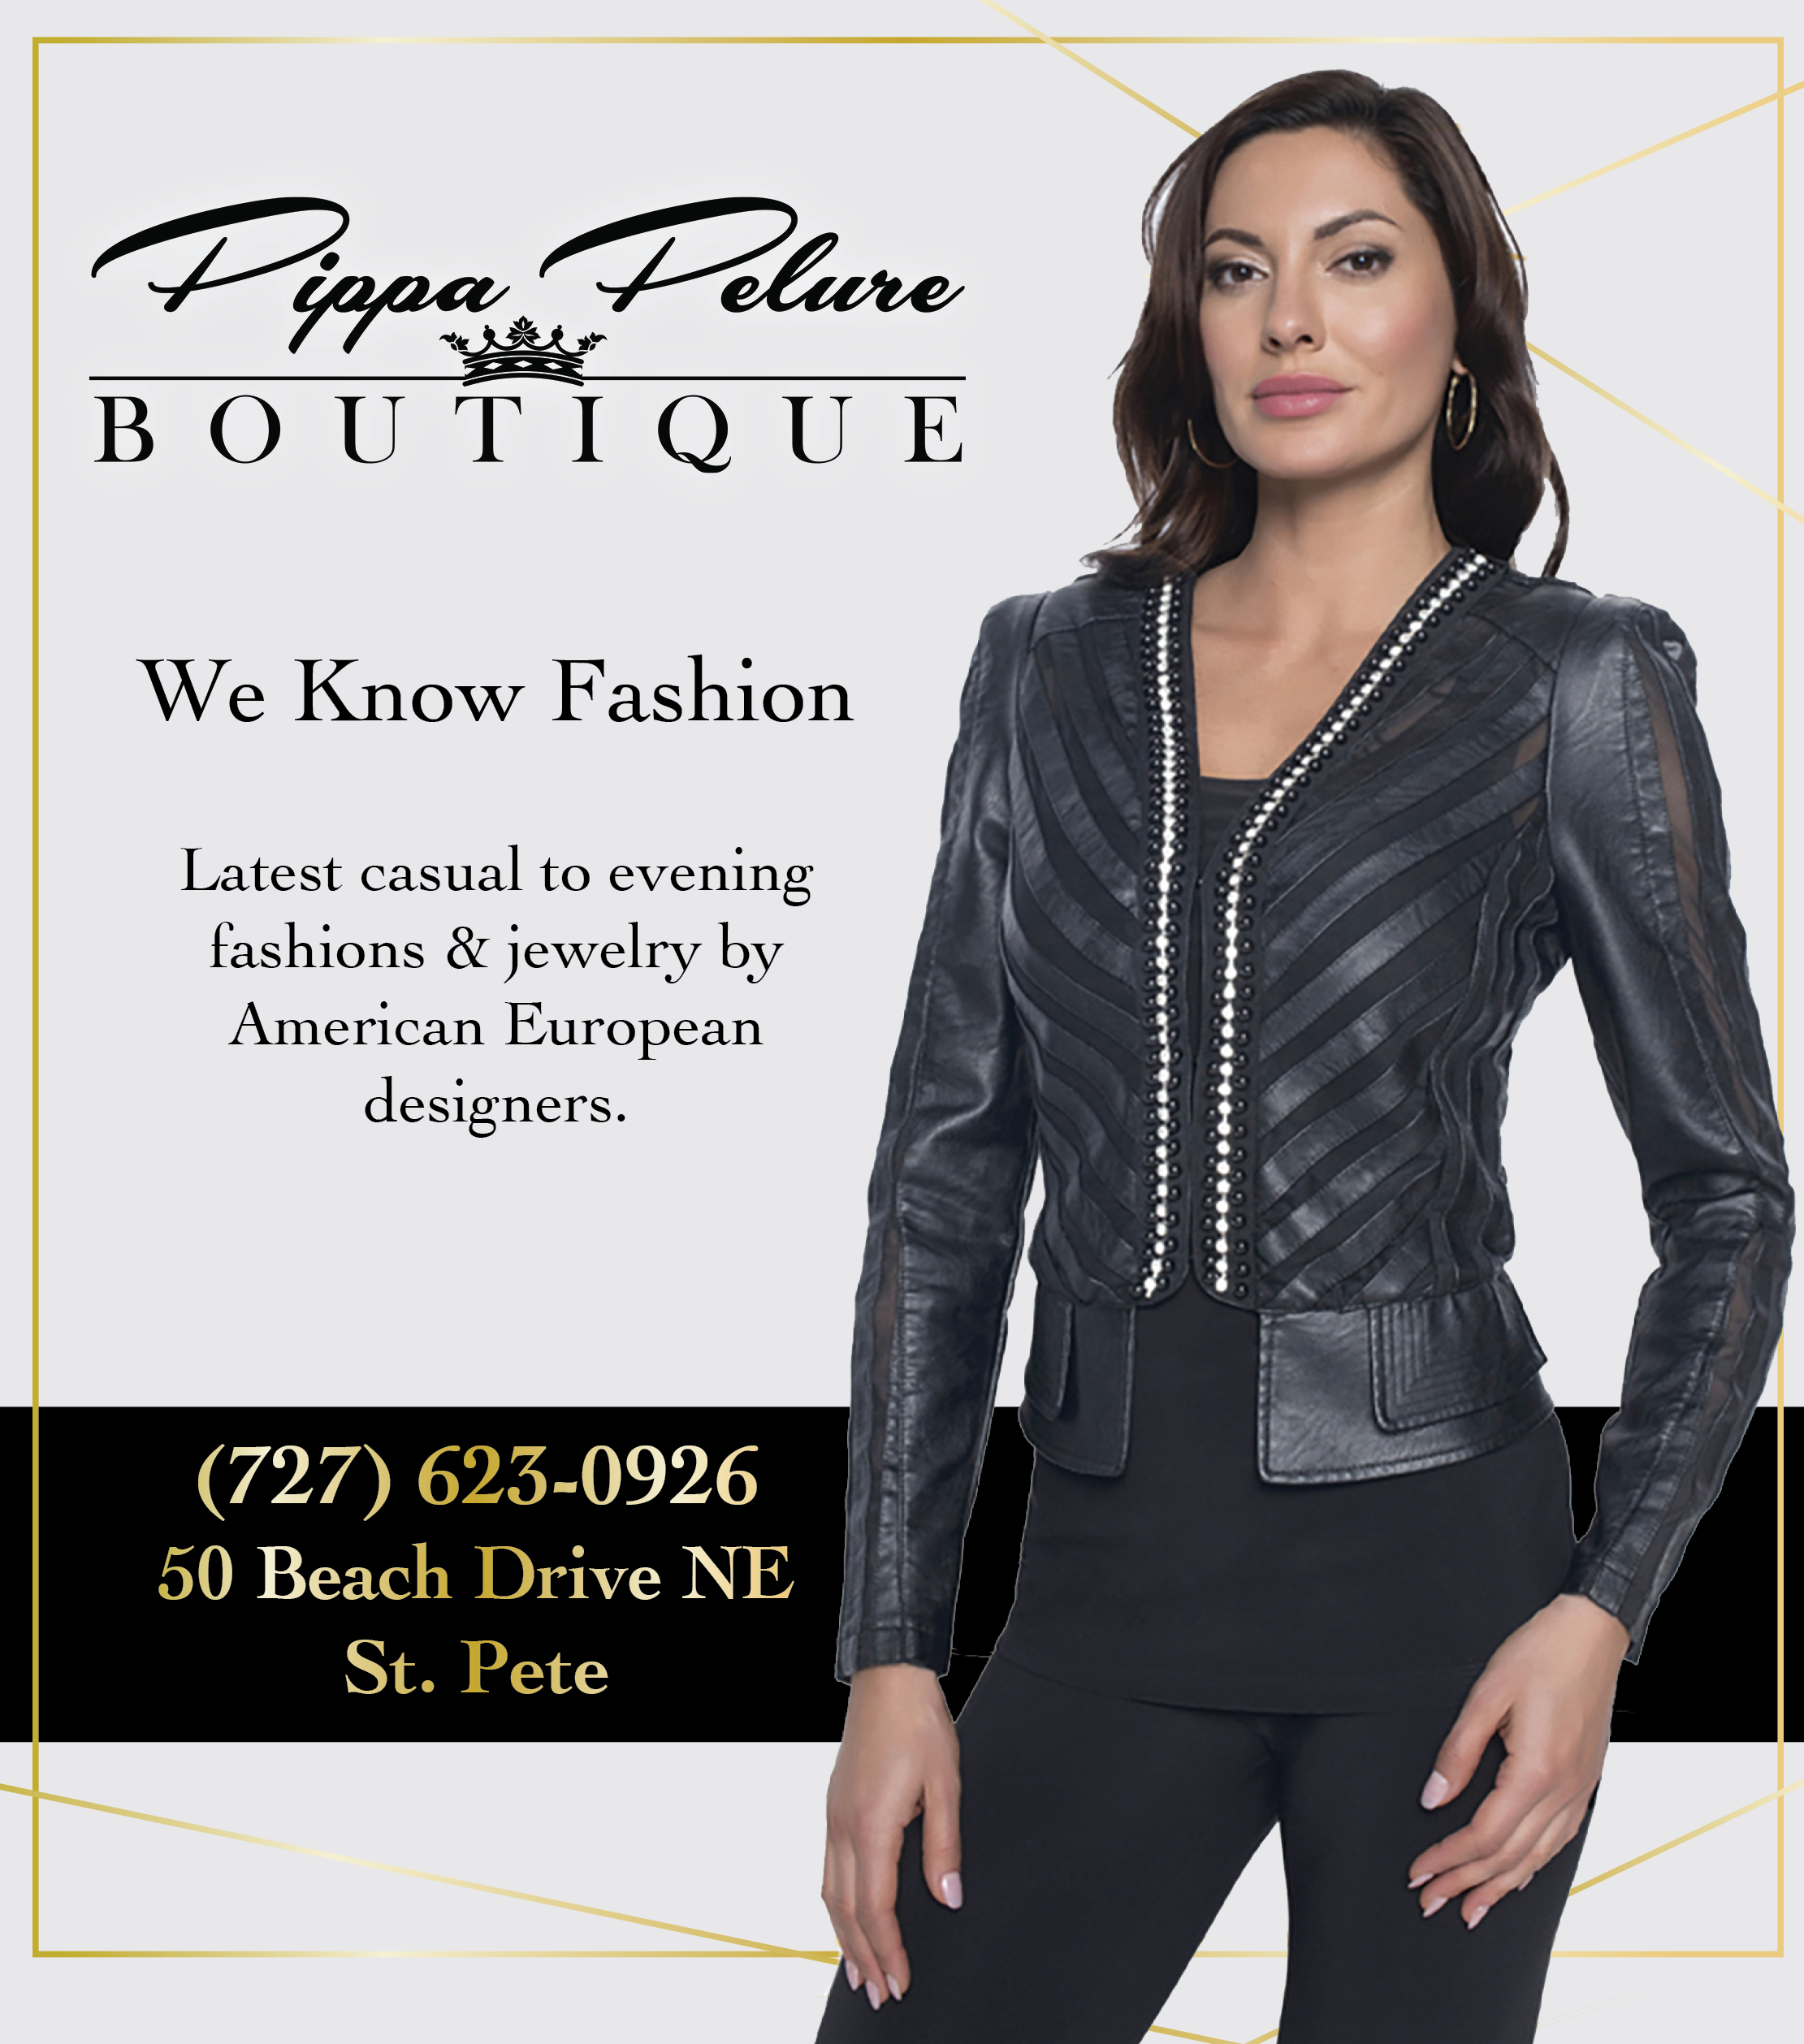 Pippa Pelure Boutique